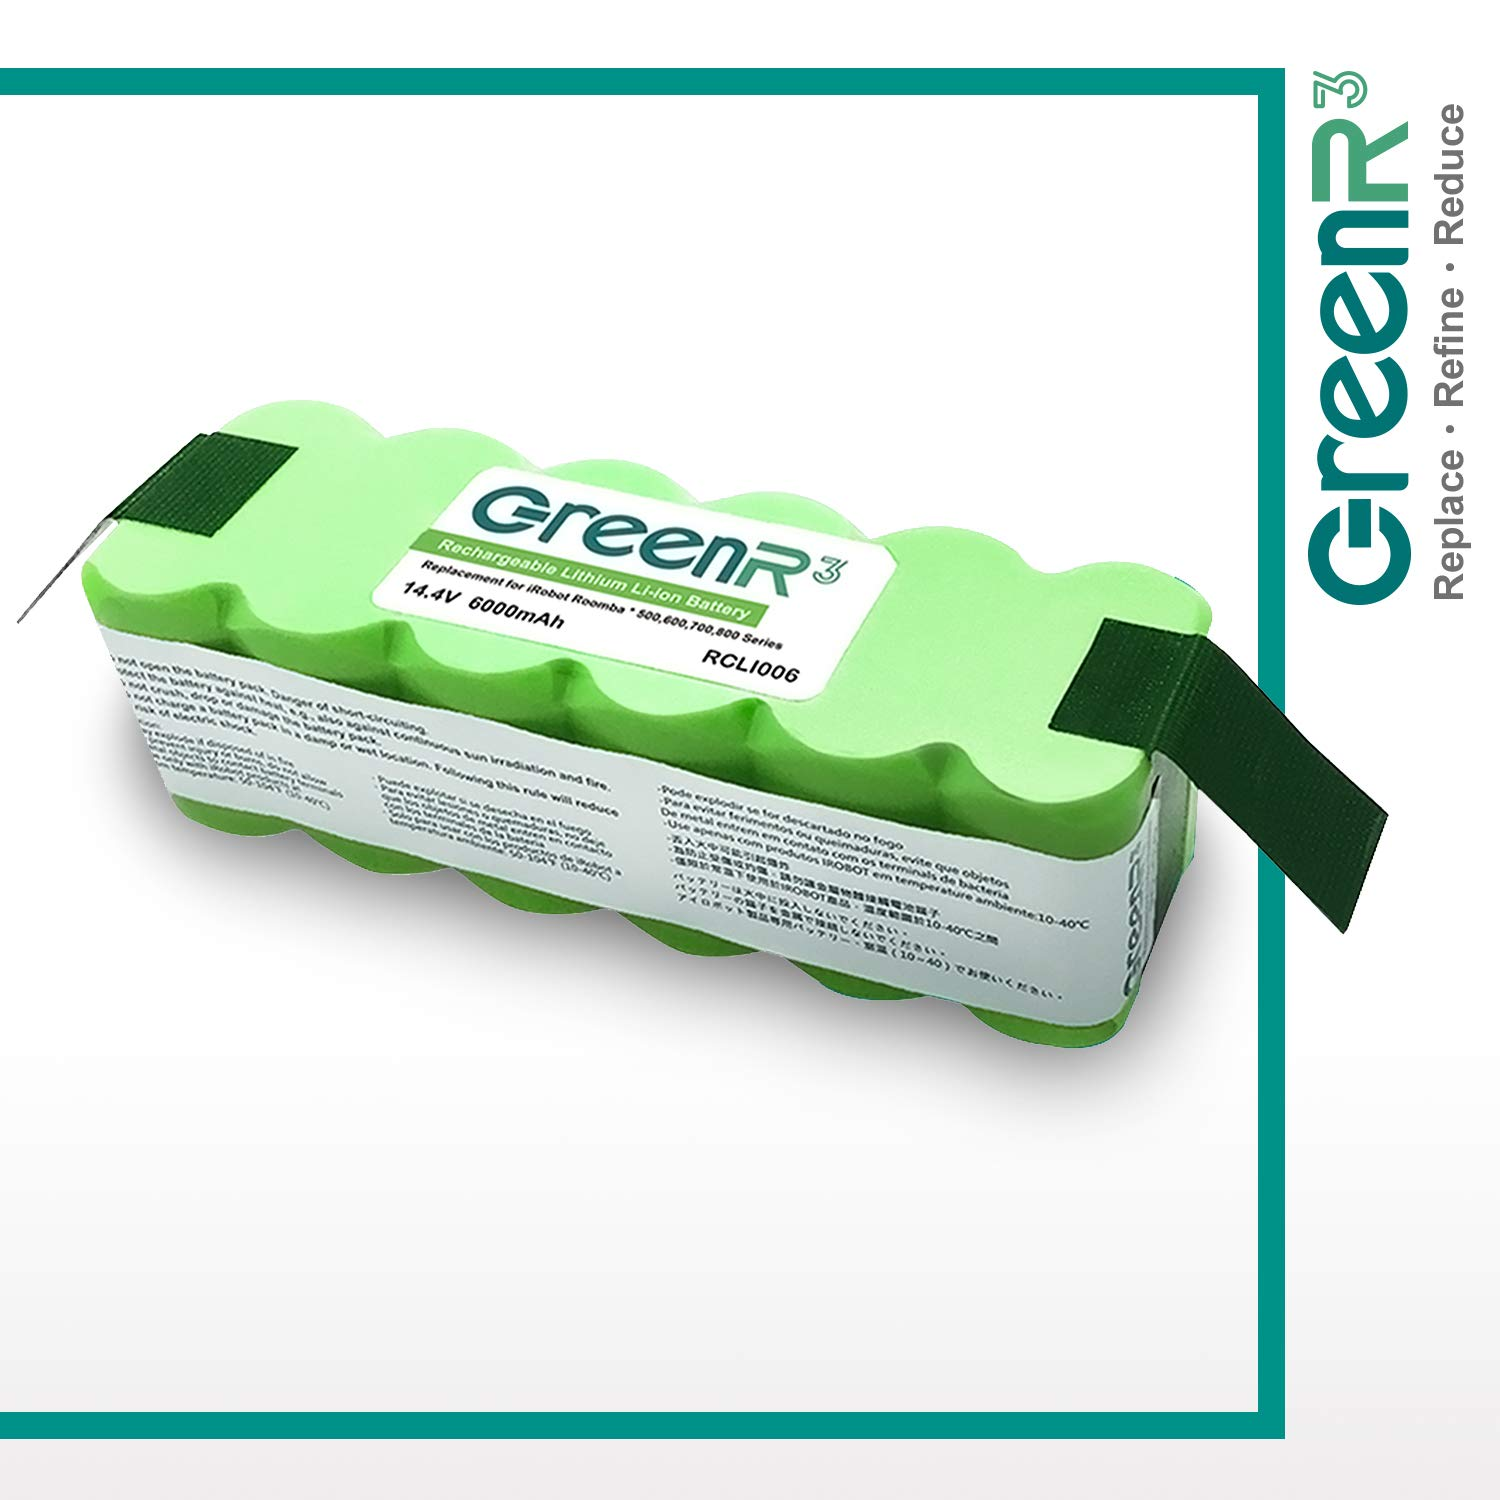 GreenR3 6000mAh 6.0Ah Lithium Battery for iRobot Roomba 80501 compatible with 500 600 700 510 520 530 531 532 535 536 540 550 551 560 570 580 650 680 690 760 770 790 Model 1-PACK by GreenR3